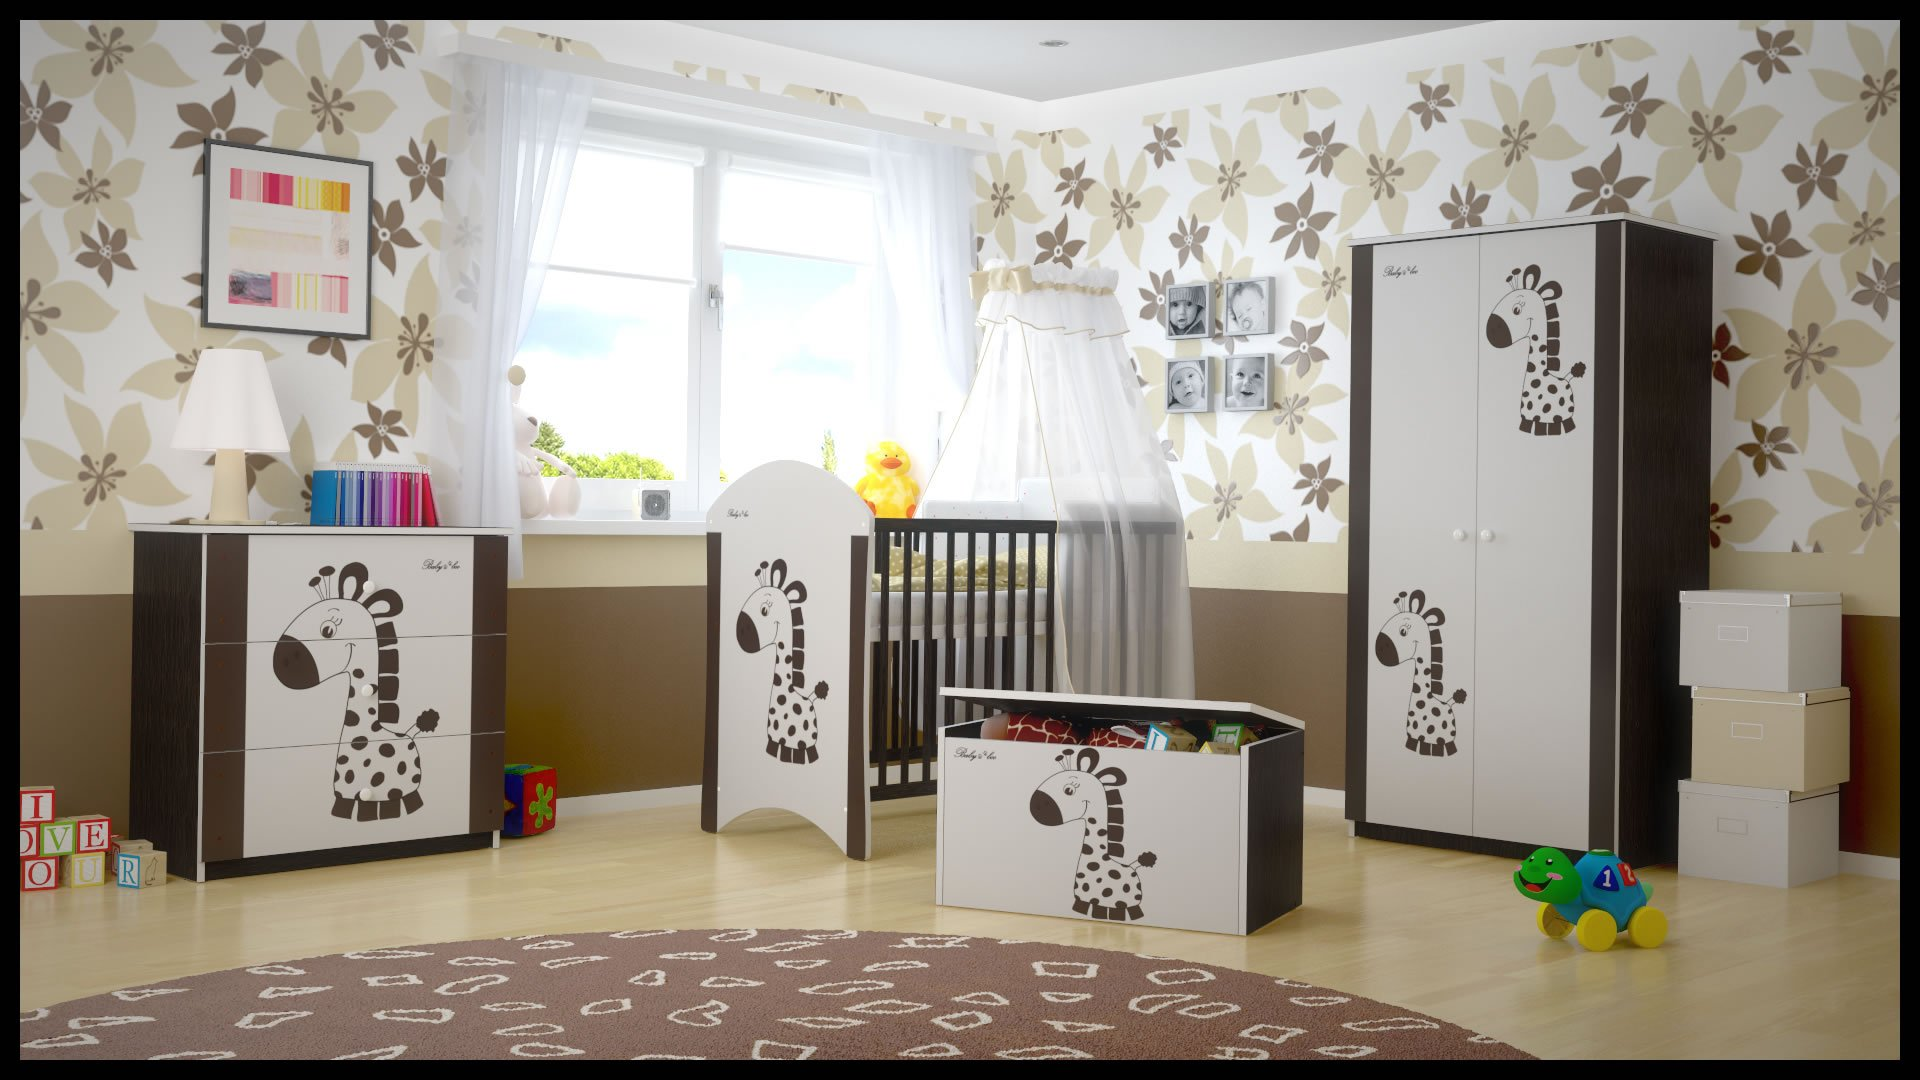 5 PCS BABY NURSERY FURNITURE SET - COT + MATTRESS + WARDROBE + CHEST OF DRAWERS + TOY BOX (model 21)  Included: cot + mattress + wardrobe + chest of drawers + toy box Material: wood GREAT QUALITY 1